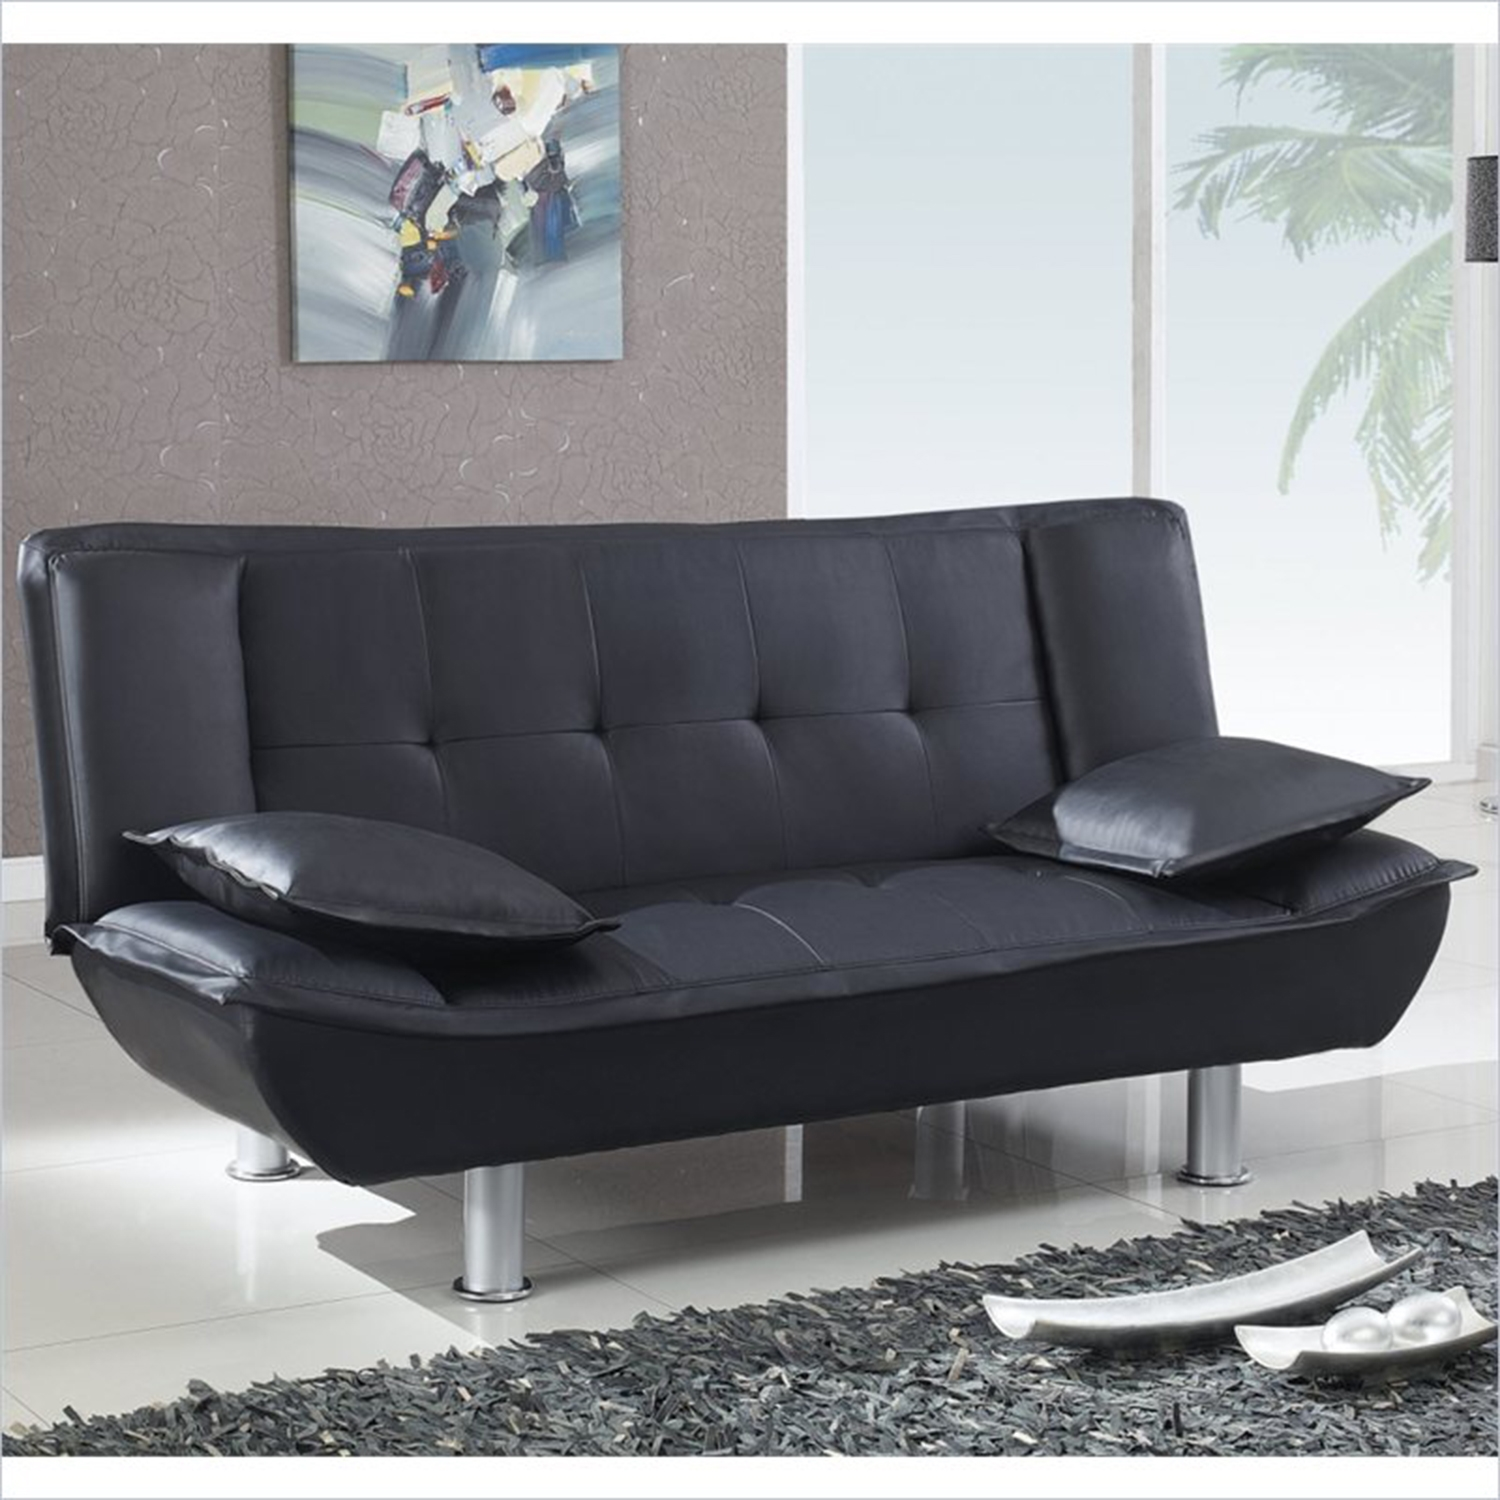 Breanna Sofa Bed - Black